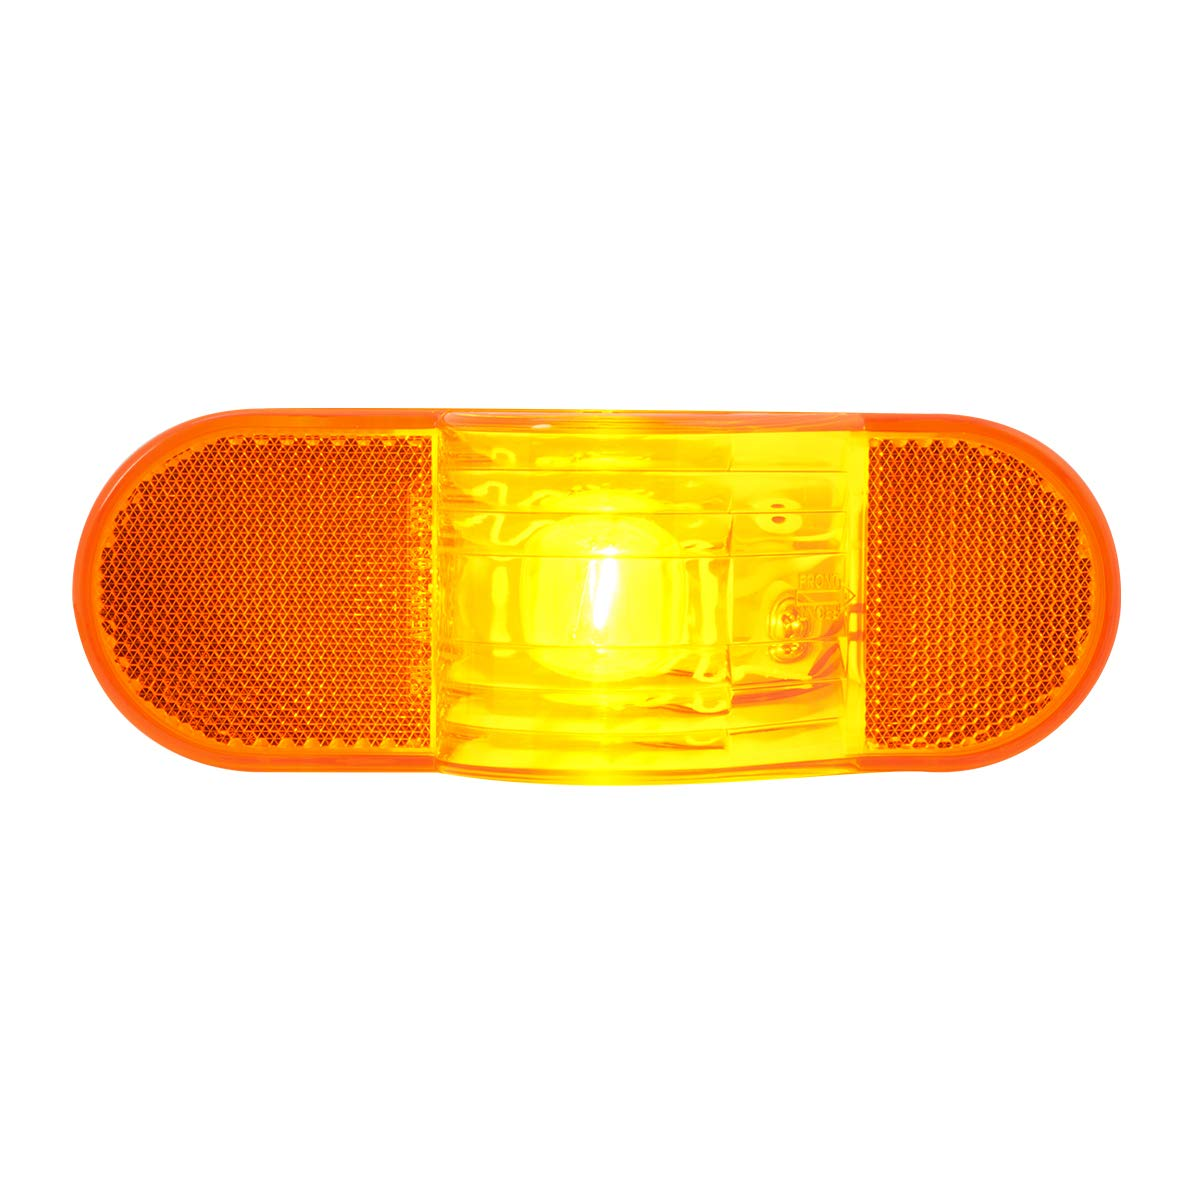 Oval Amber Side Turn with Reflector GG Grand General 80703 Sealed Light